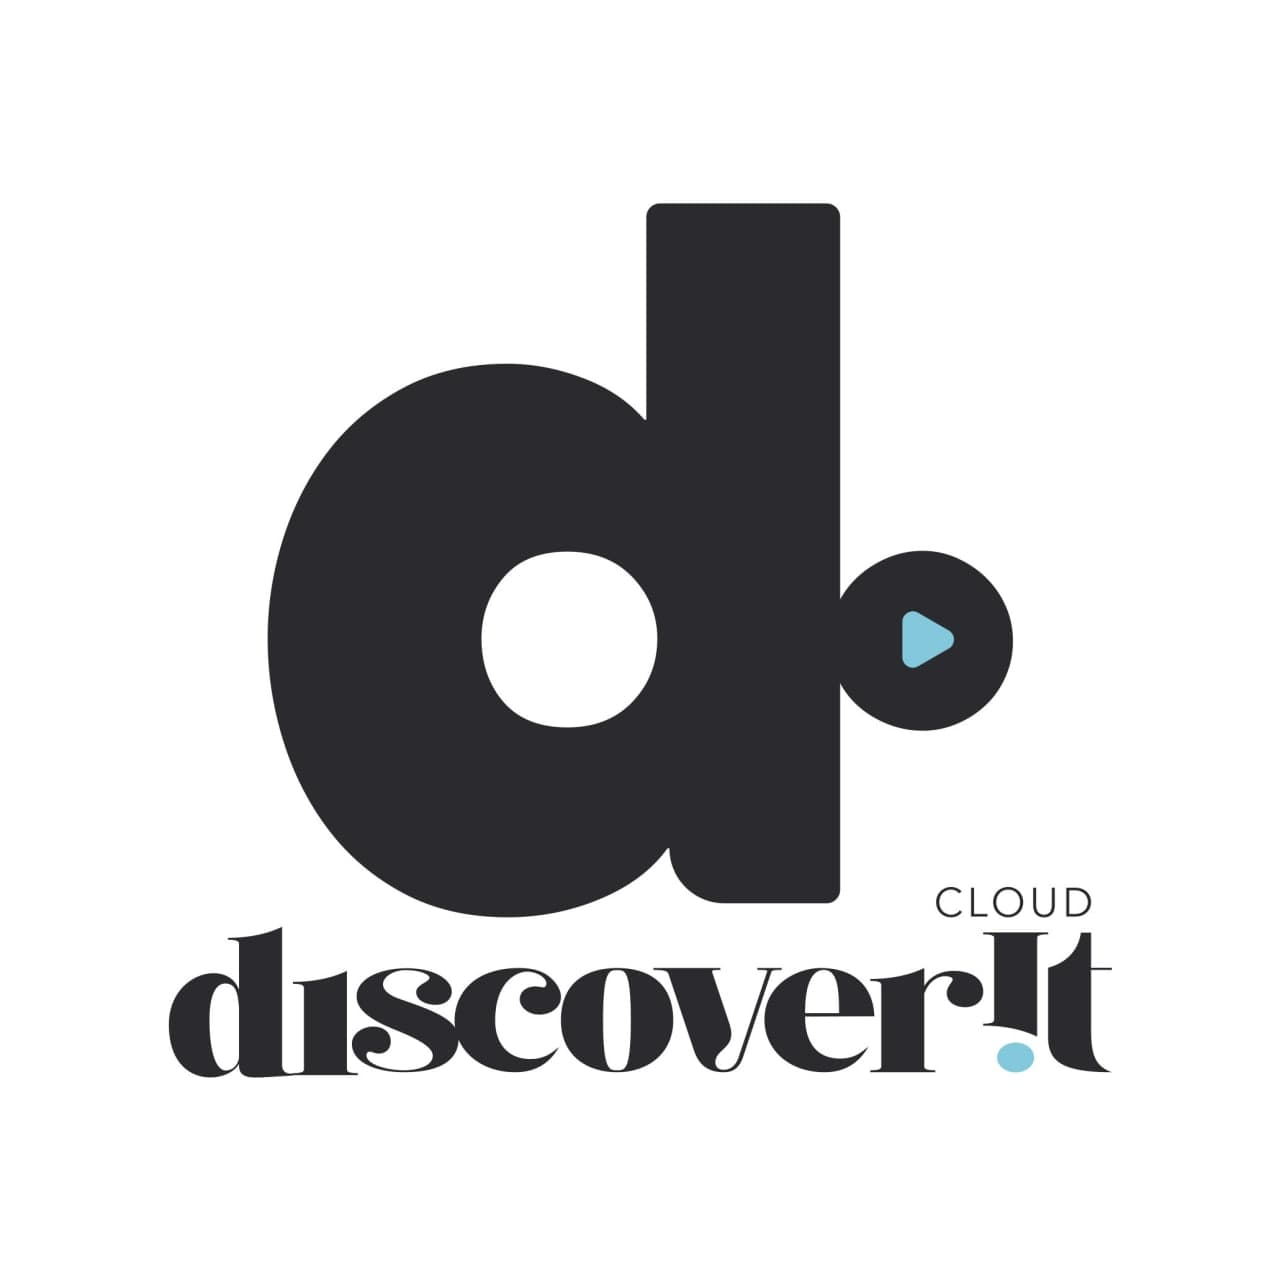 Discoverit.cloud